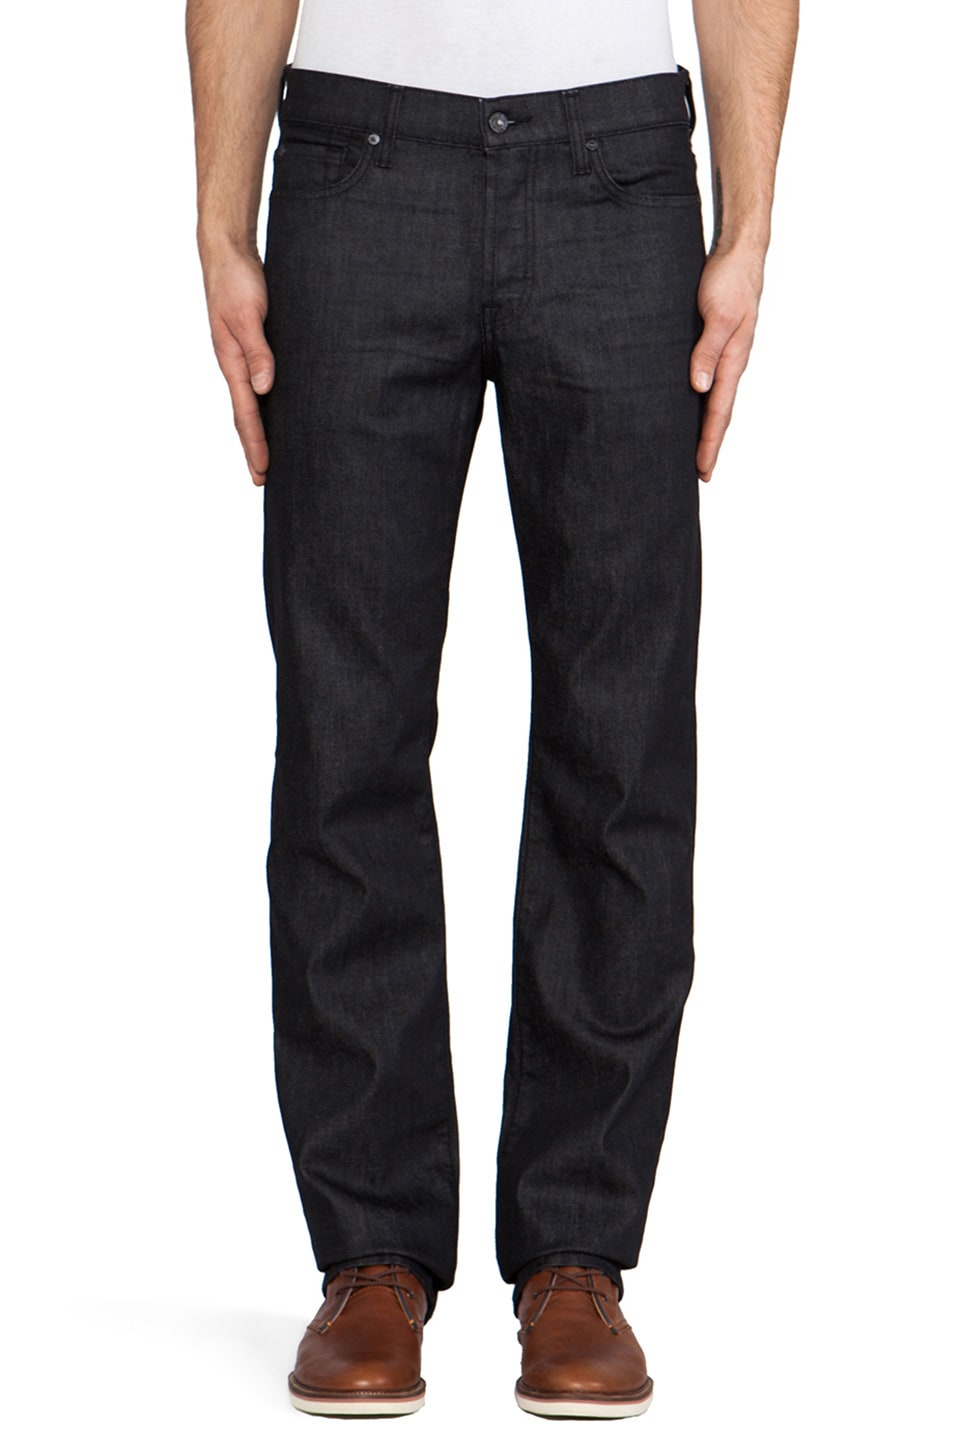 7 For All Mankind Standard in Clean Black